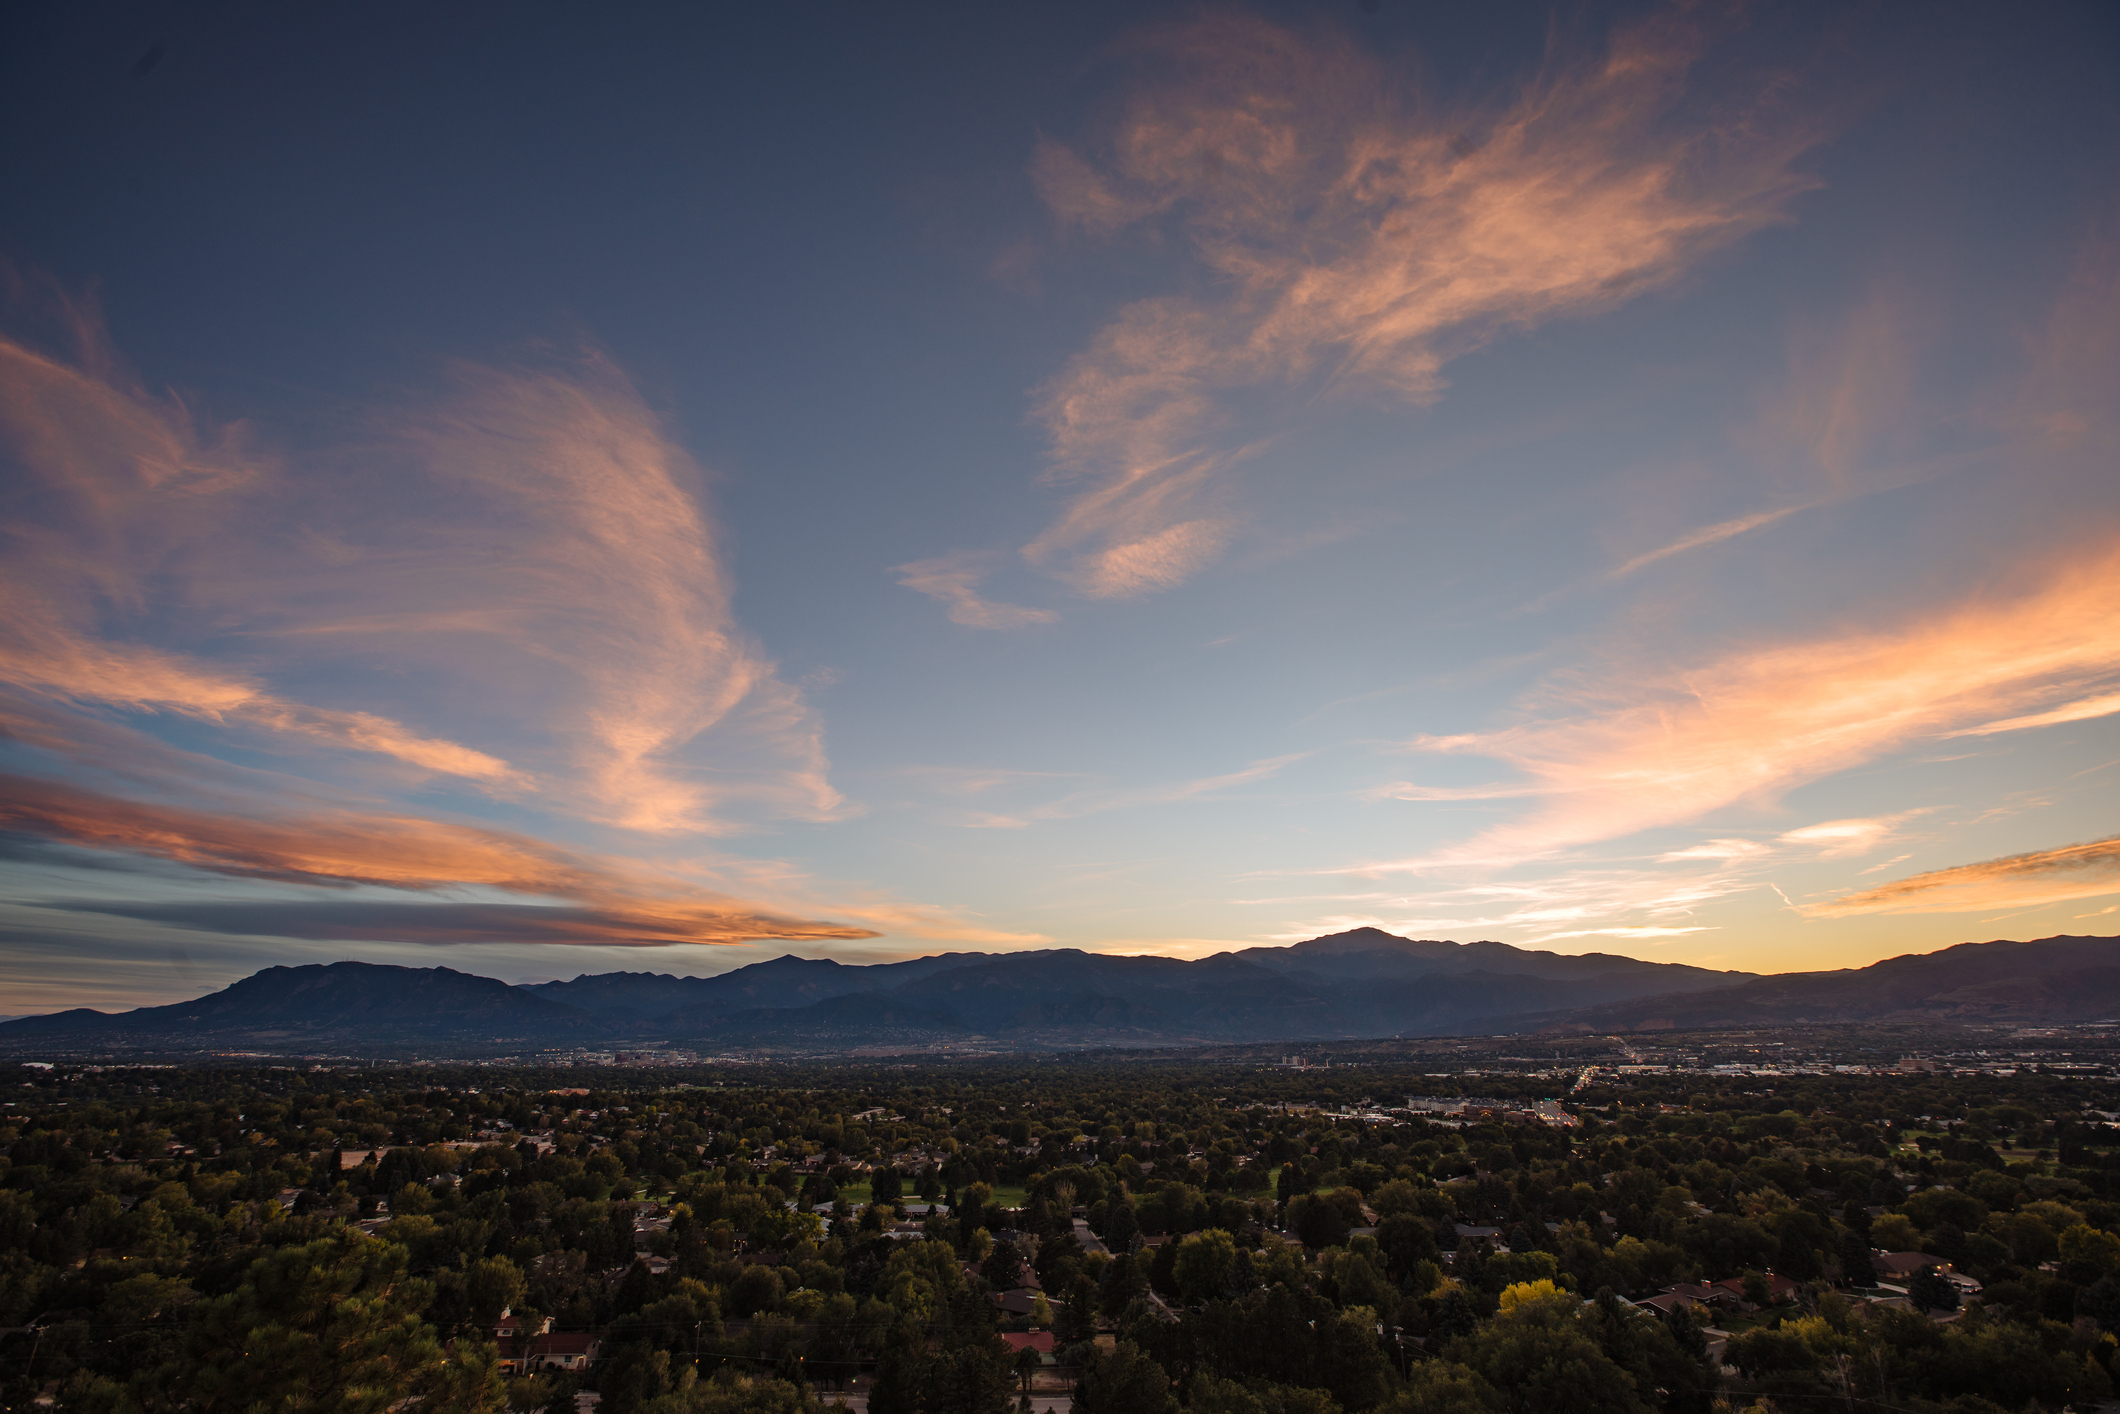 City of Colorado Springs and Pikes Peak At Sunset